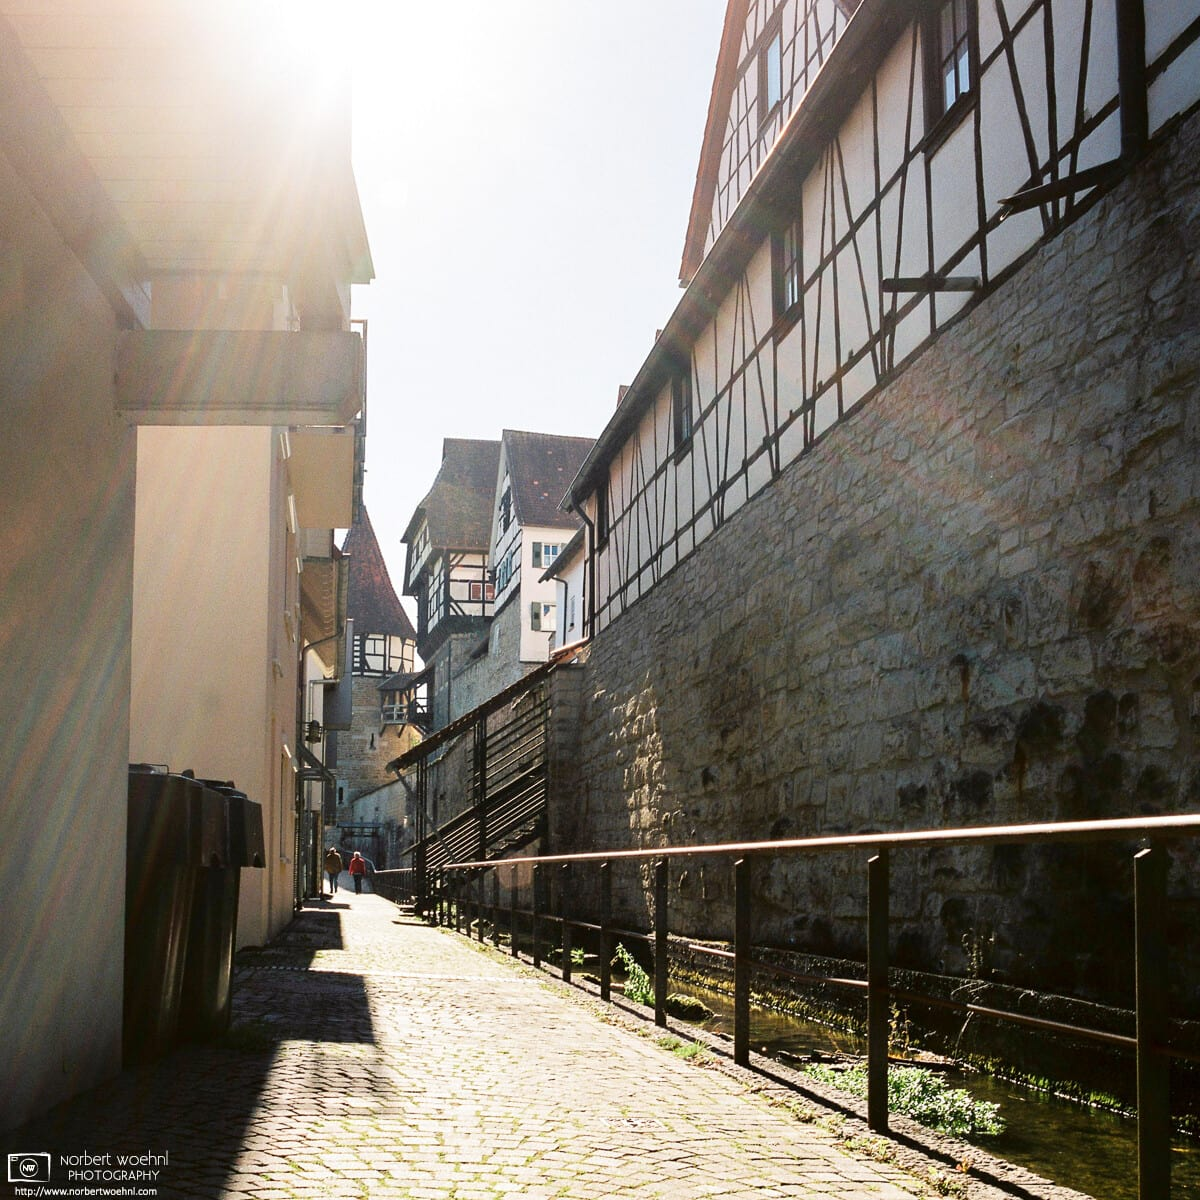 Bright rays of sunlight at Little Venice, a pleasant area along the old town wall of Balingen, Germany.